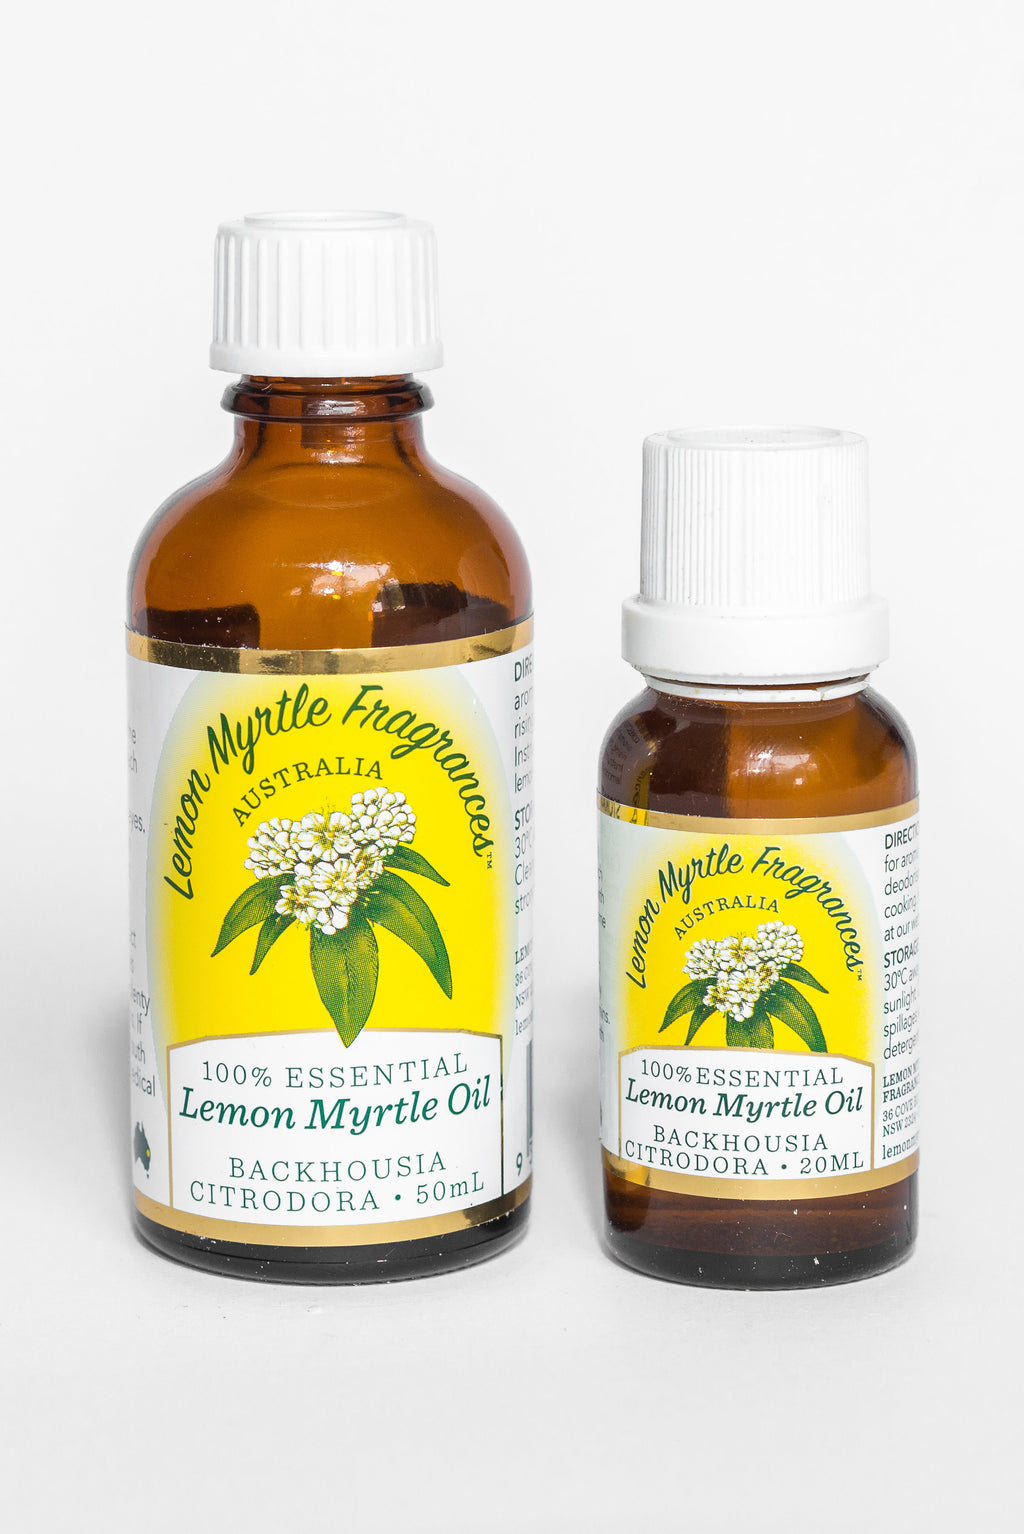 Lemon Myrtle Oil and Molluscum Contagiosum.